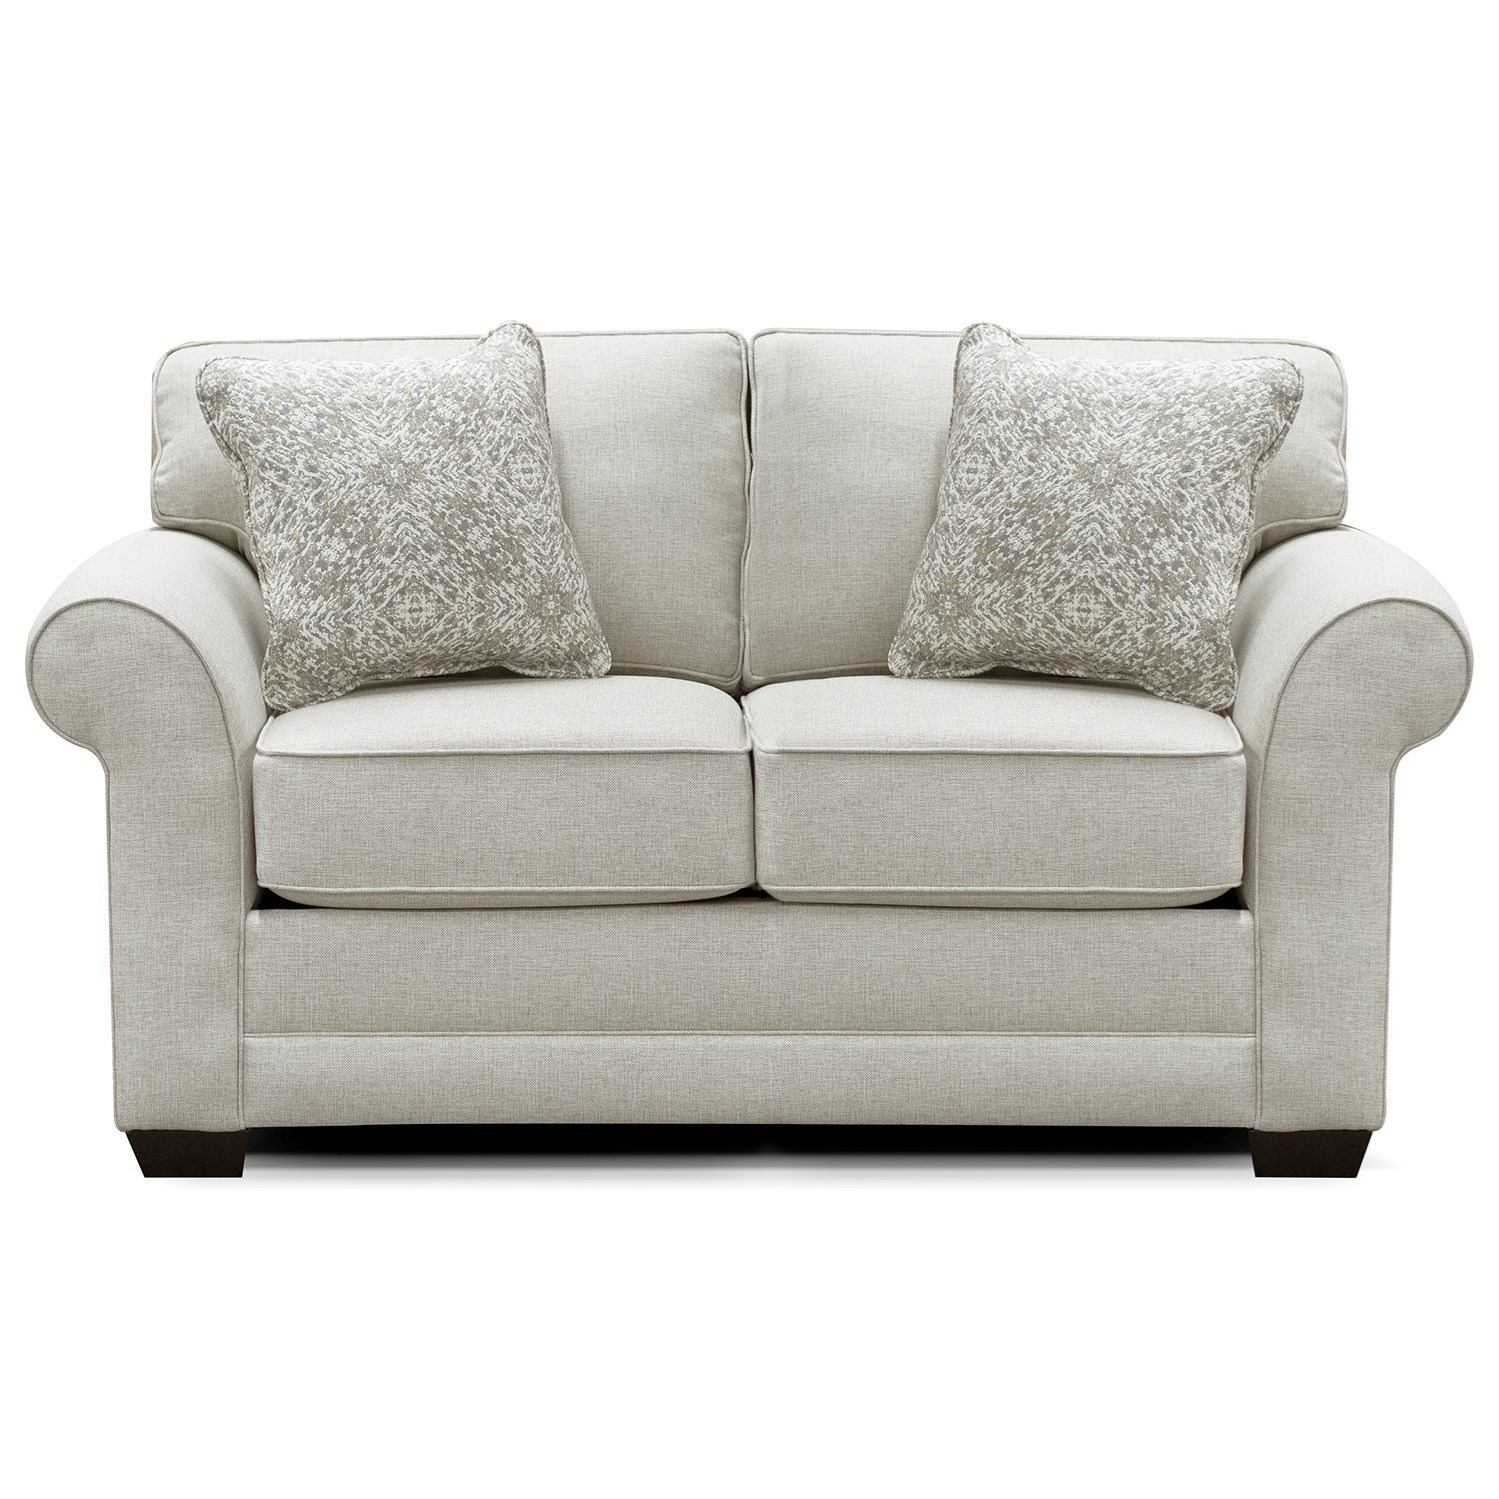 V8H0 Loveseat by Alexvale at Northeast Factory Direct